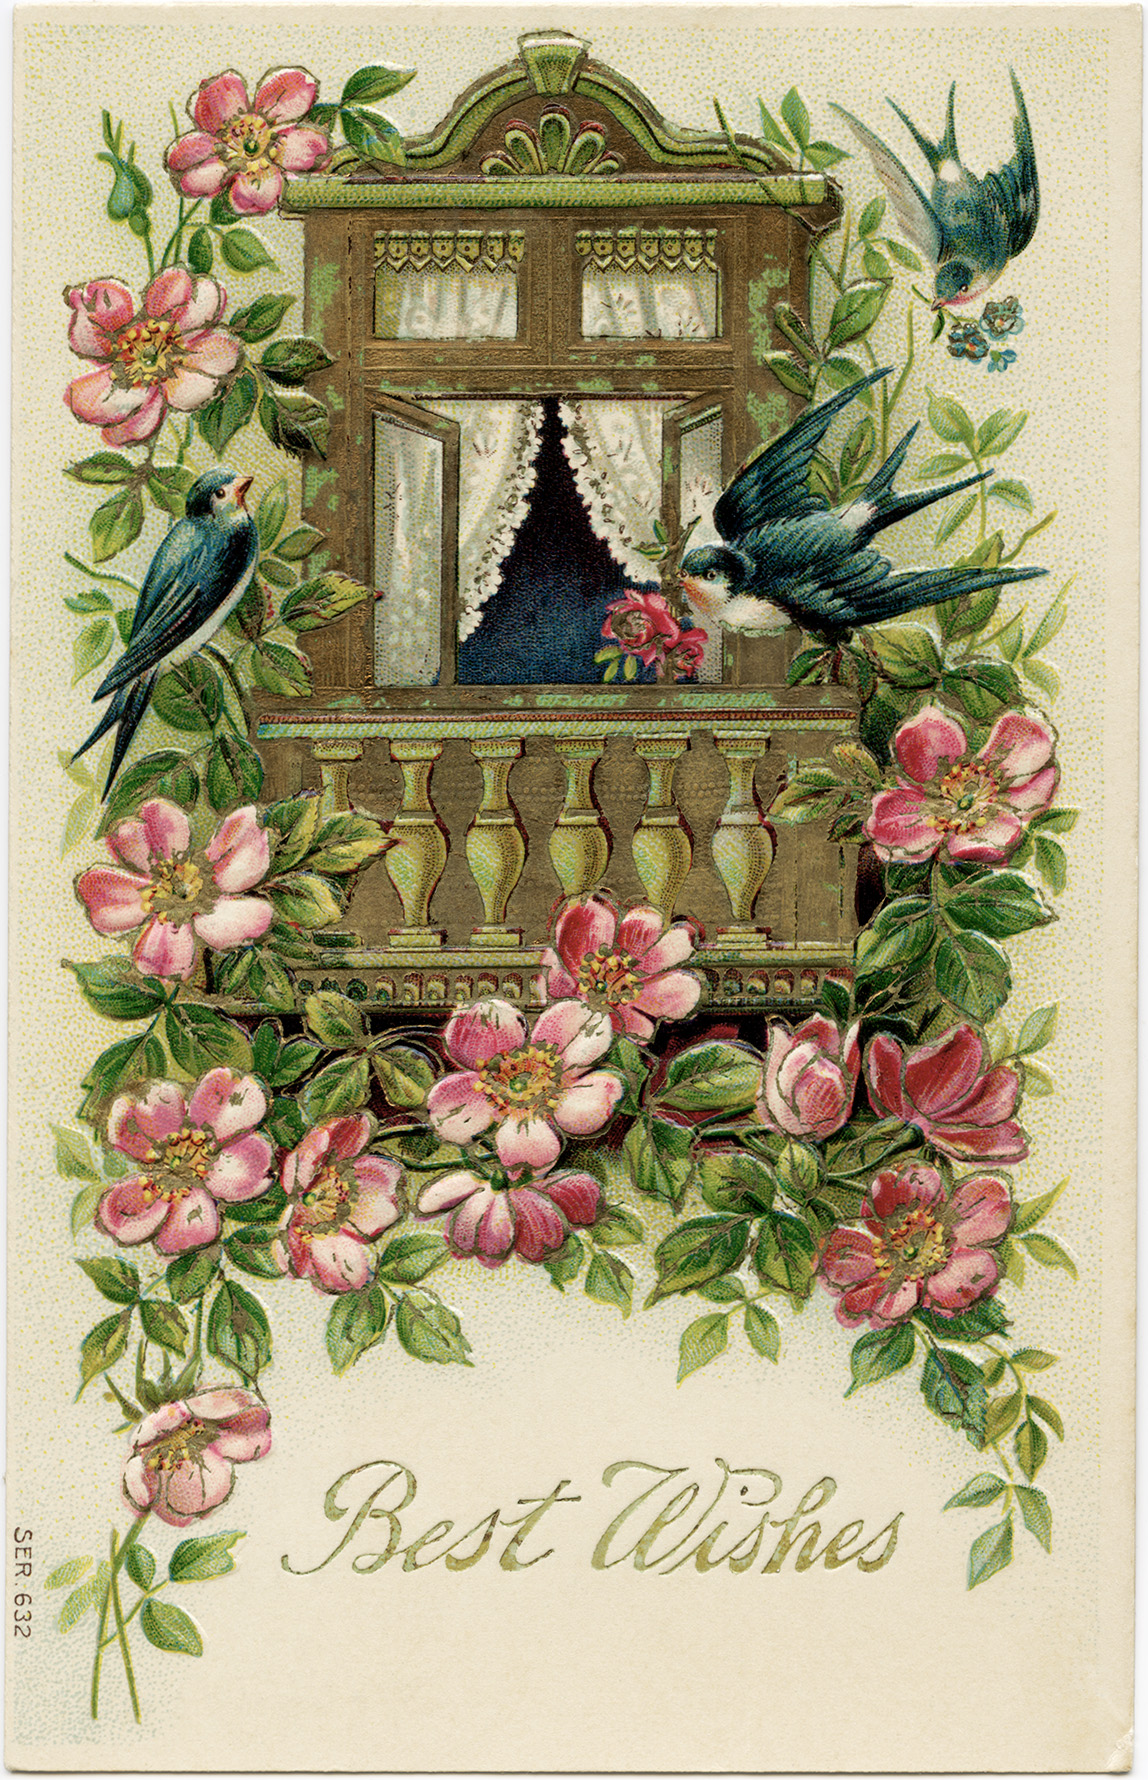 Birds And Flowers Postcard Free Vintage Image